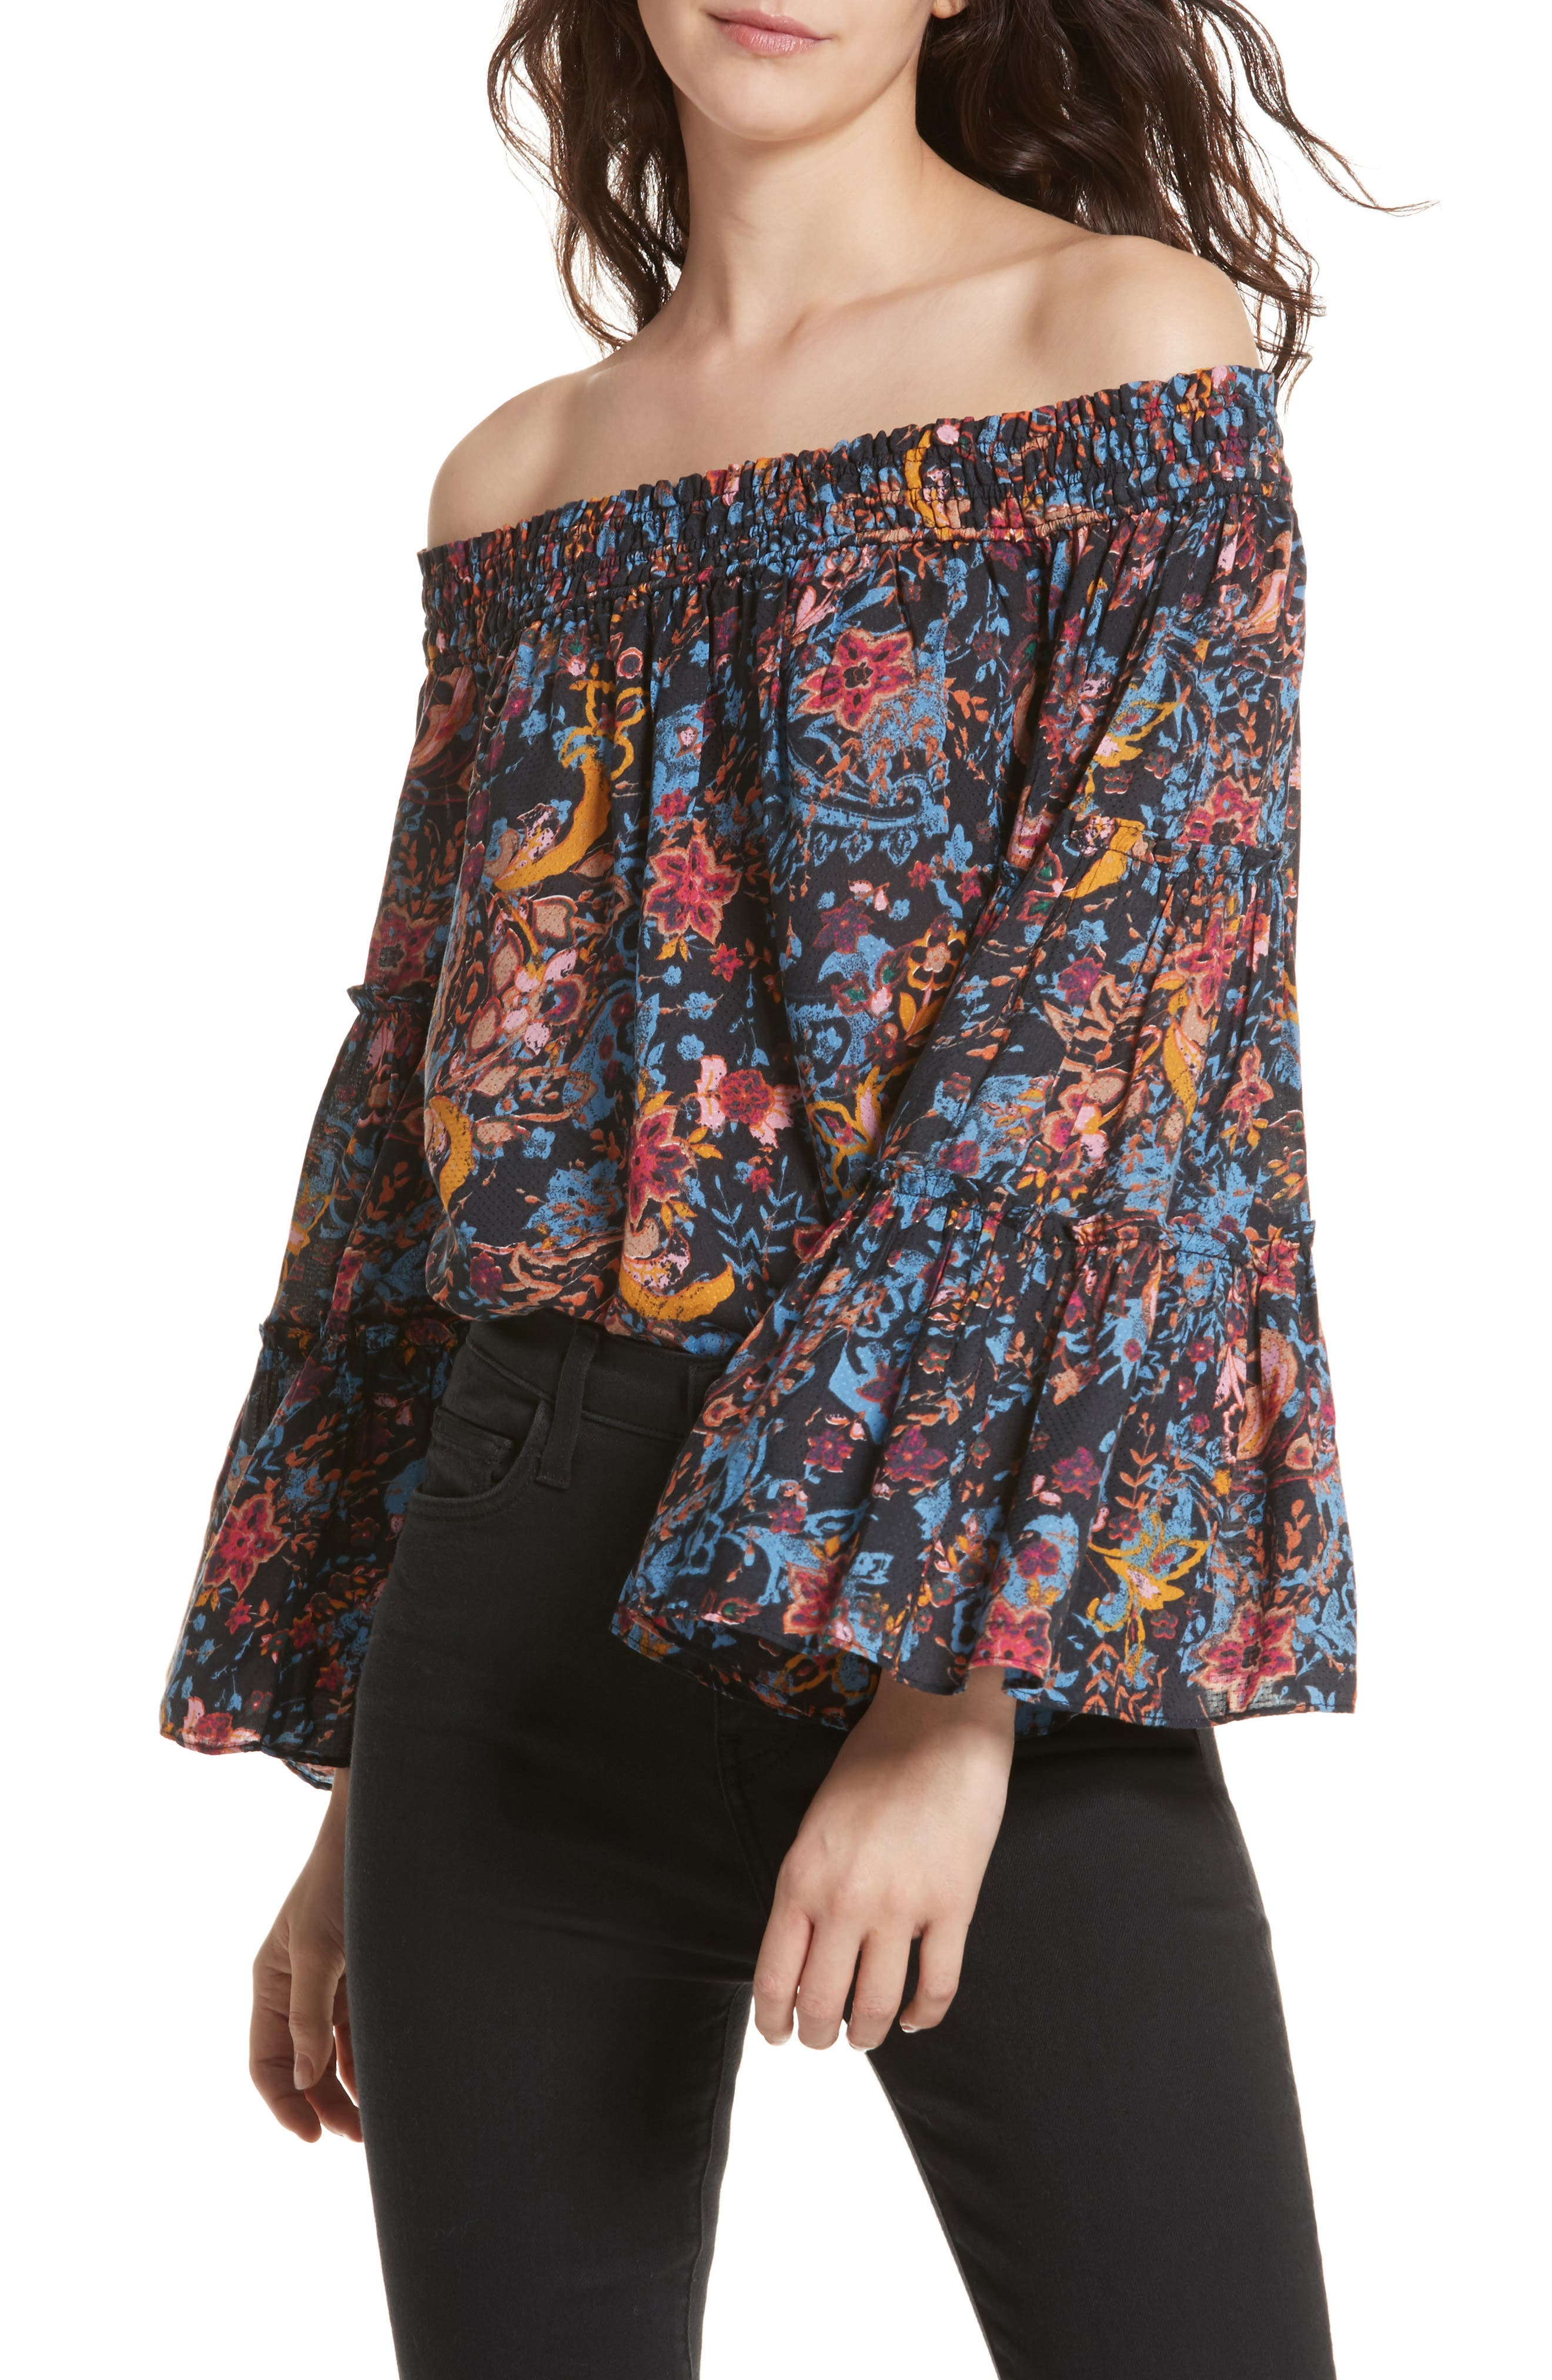 Free Spirit Off the Shoulder Top,                             Main thumbnail 1, color,                             001